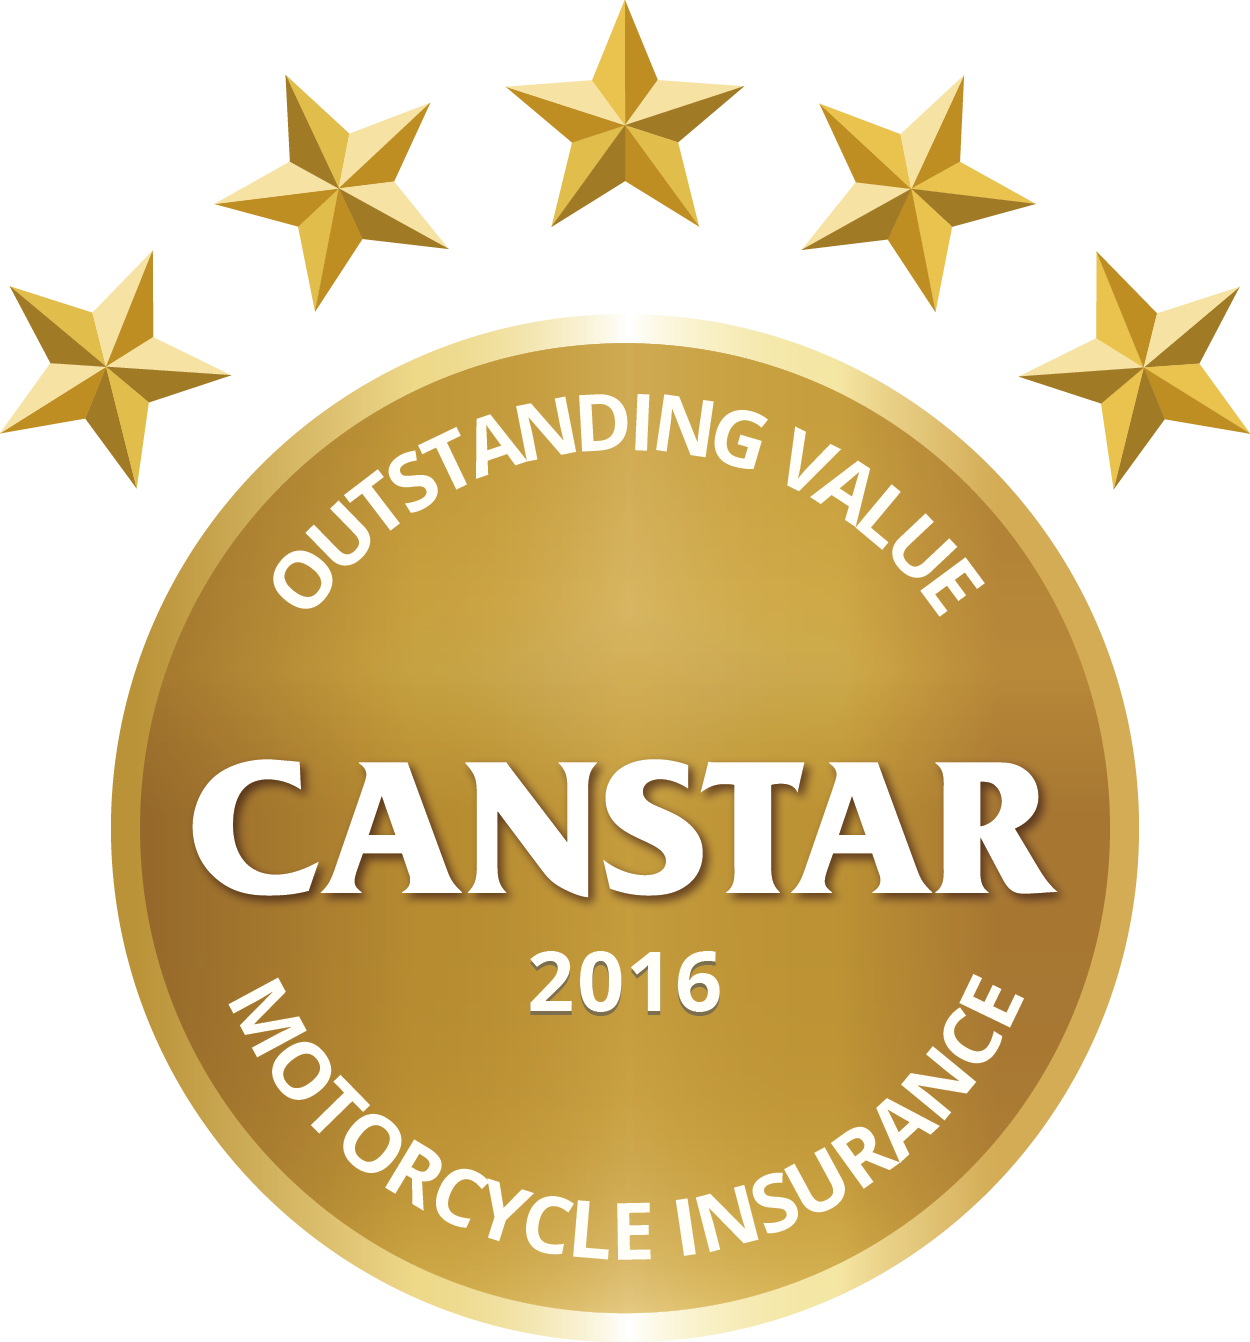 CANSTAR 2016 – Outstanding Value-Motorcycle Insurance